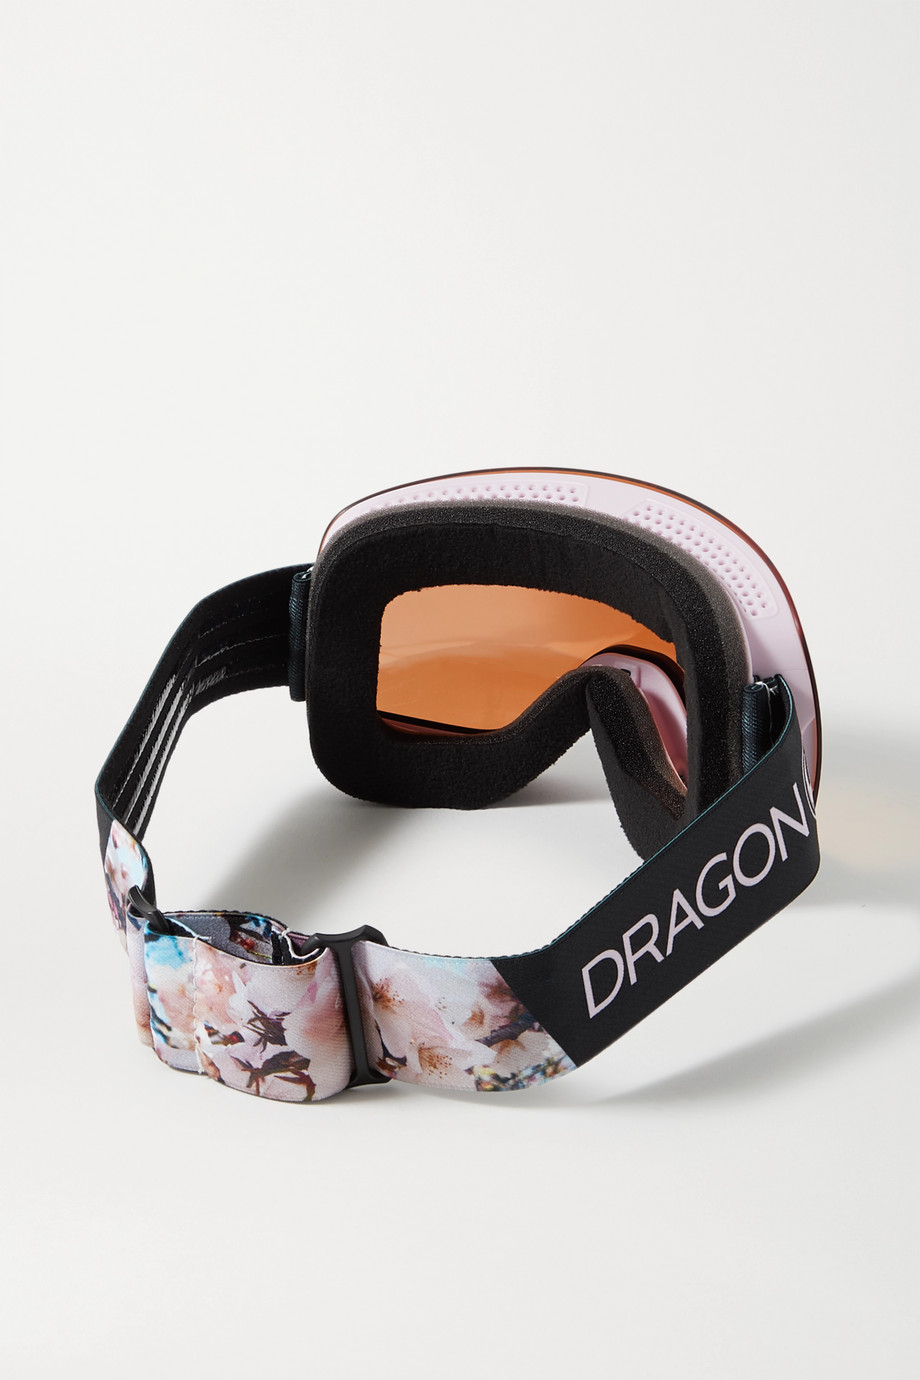 Dragon X1s mirrored ski goggles